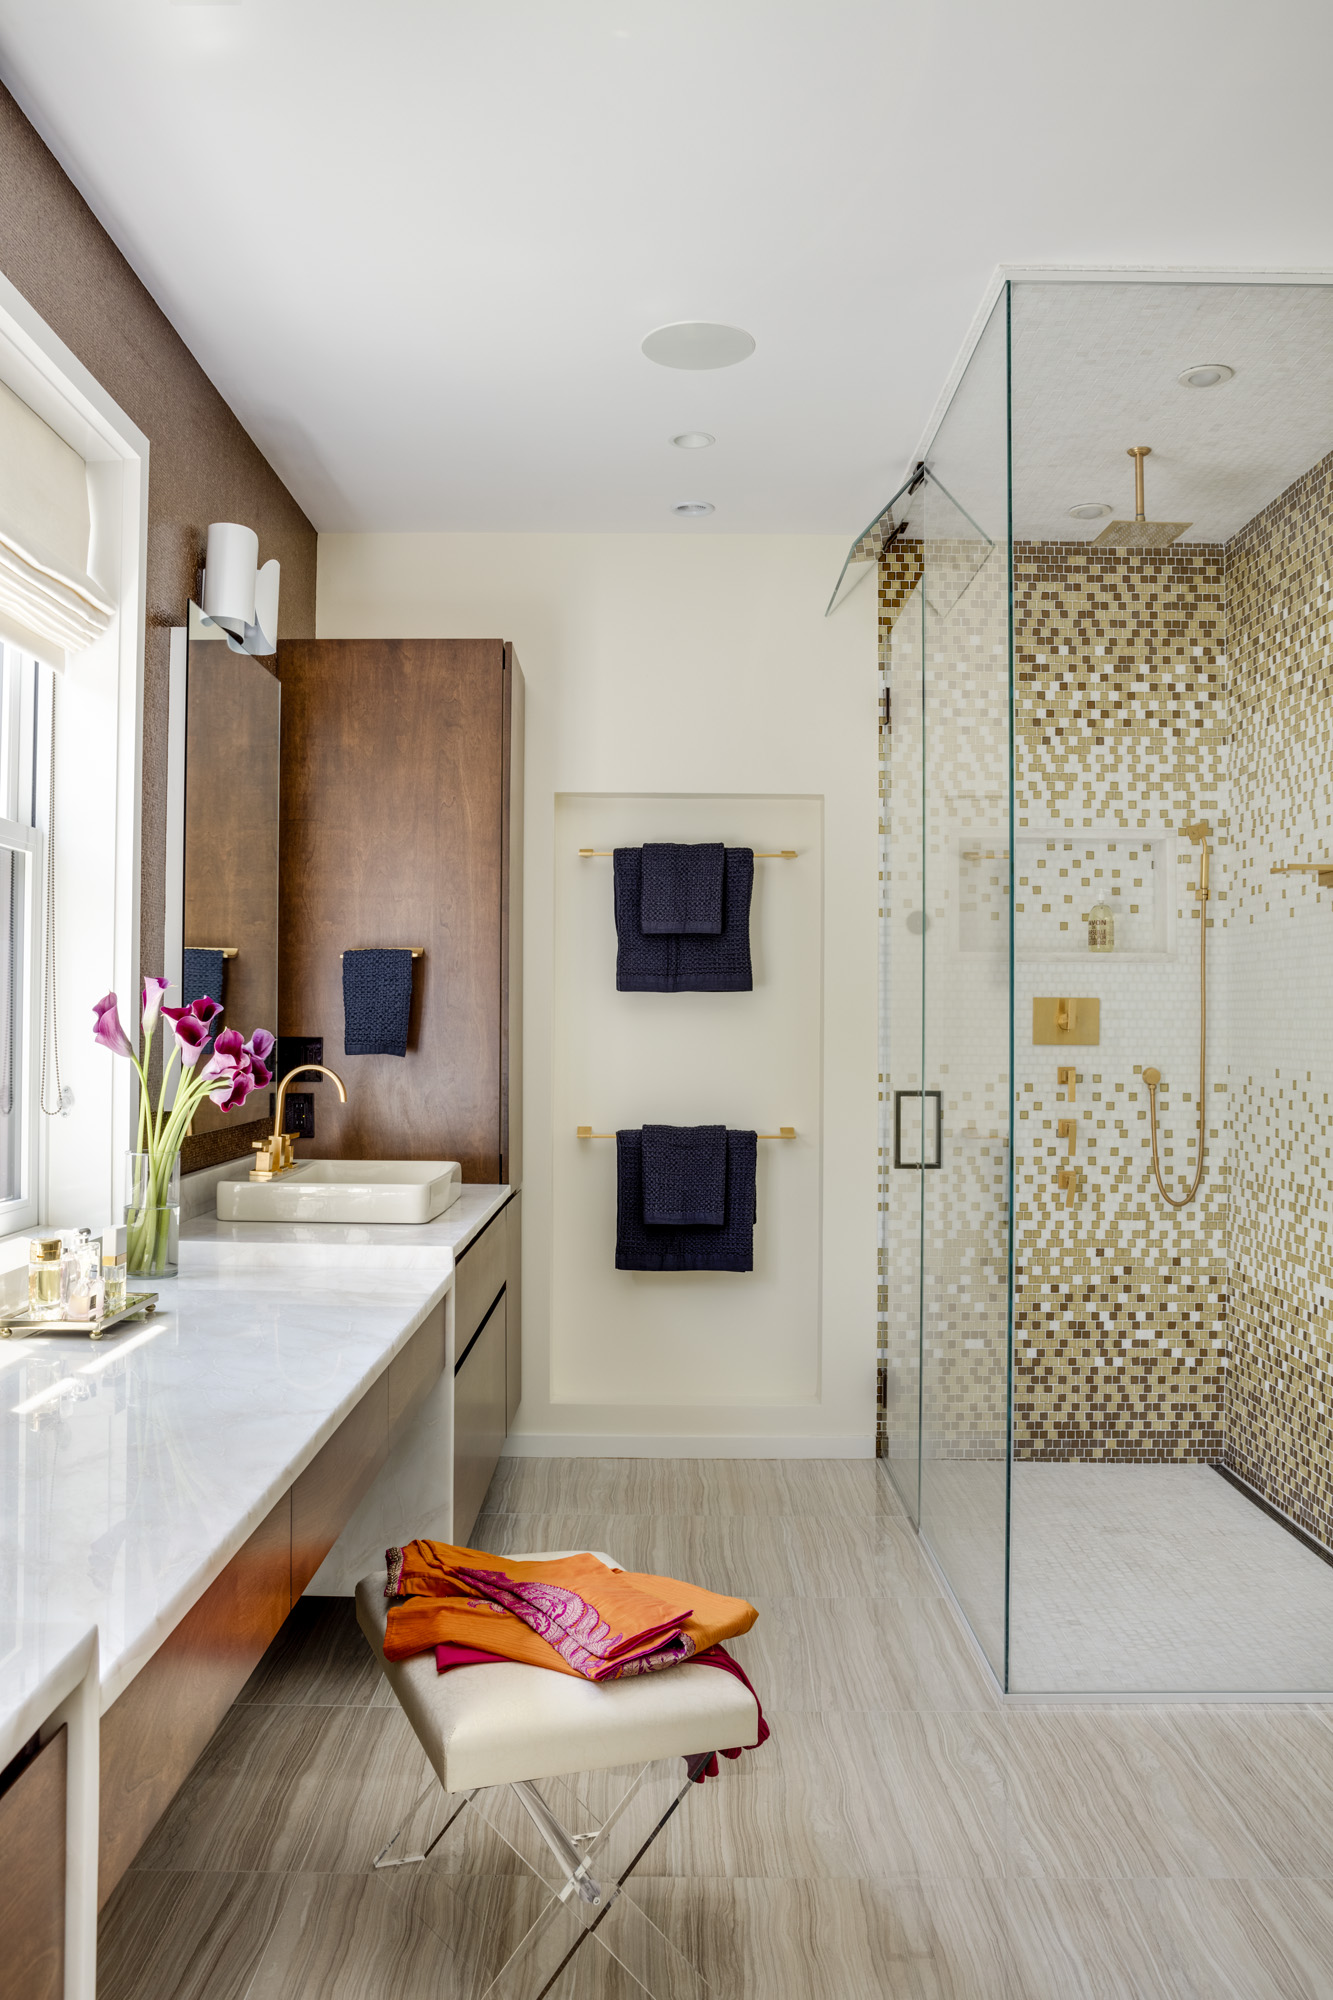 In the master bath, a glass mosaicfrom DiscoverTile provides visual interest; the floor and ceiling tile is also from DiscoverTile. Outside the shower, floor tile from Ann Sacks offsets the warmth of the built-in wood cabinetry and vanity with Calacatta marble from Athena Marble and Granite. The vesselsinks are byTOTO, while the faucet, showerhead, and handshower are from Newport Brass.